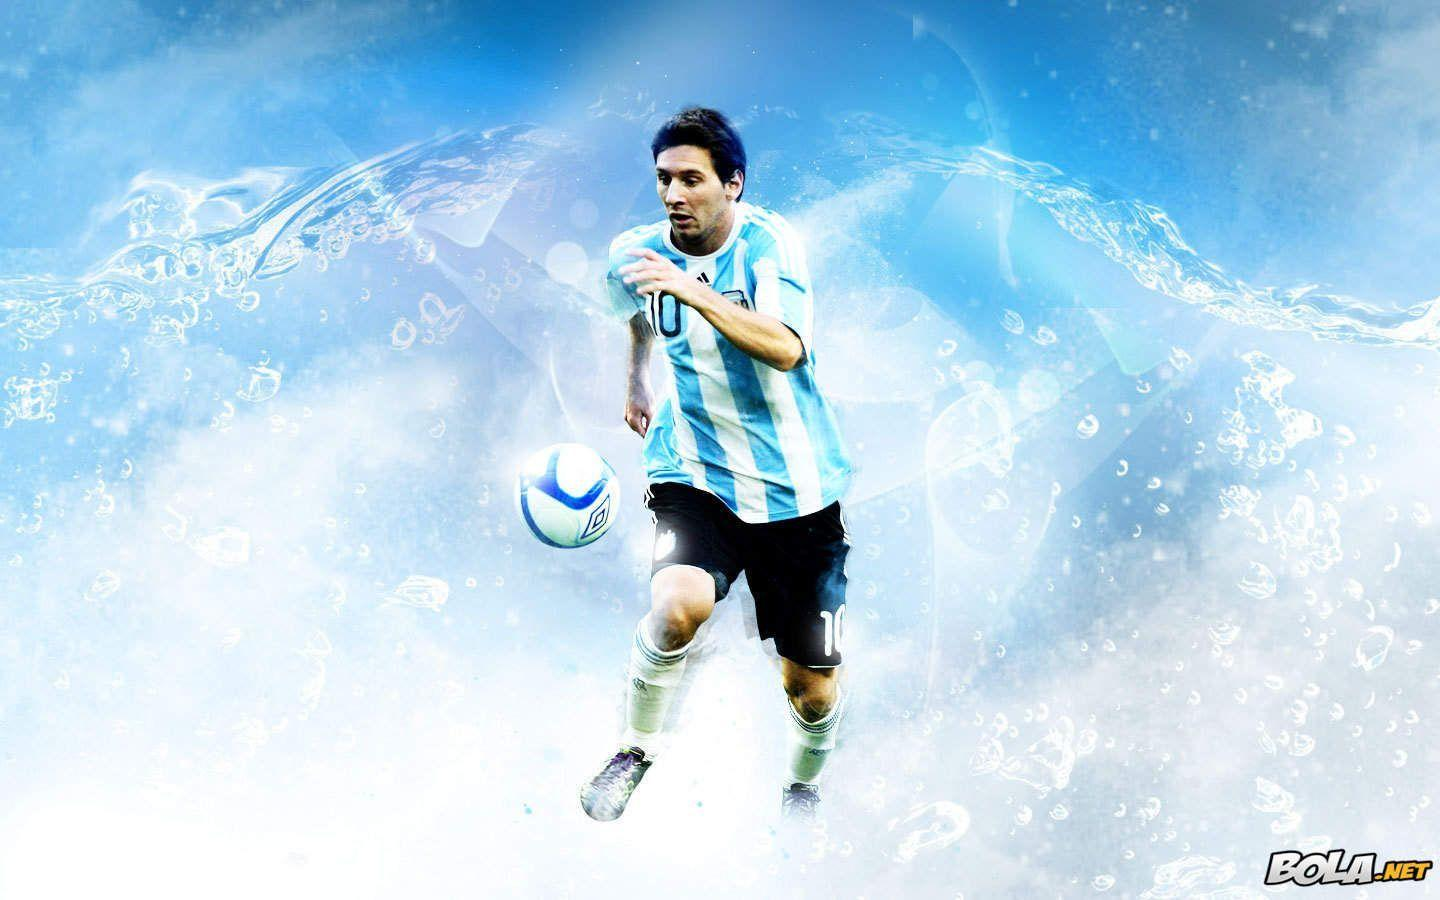 Lionel Messi Argentina Hd Wallpapers - Football Wallpaper HD ...